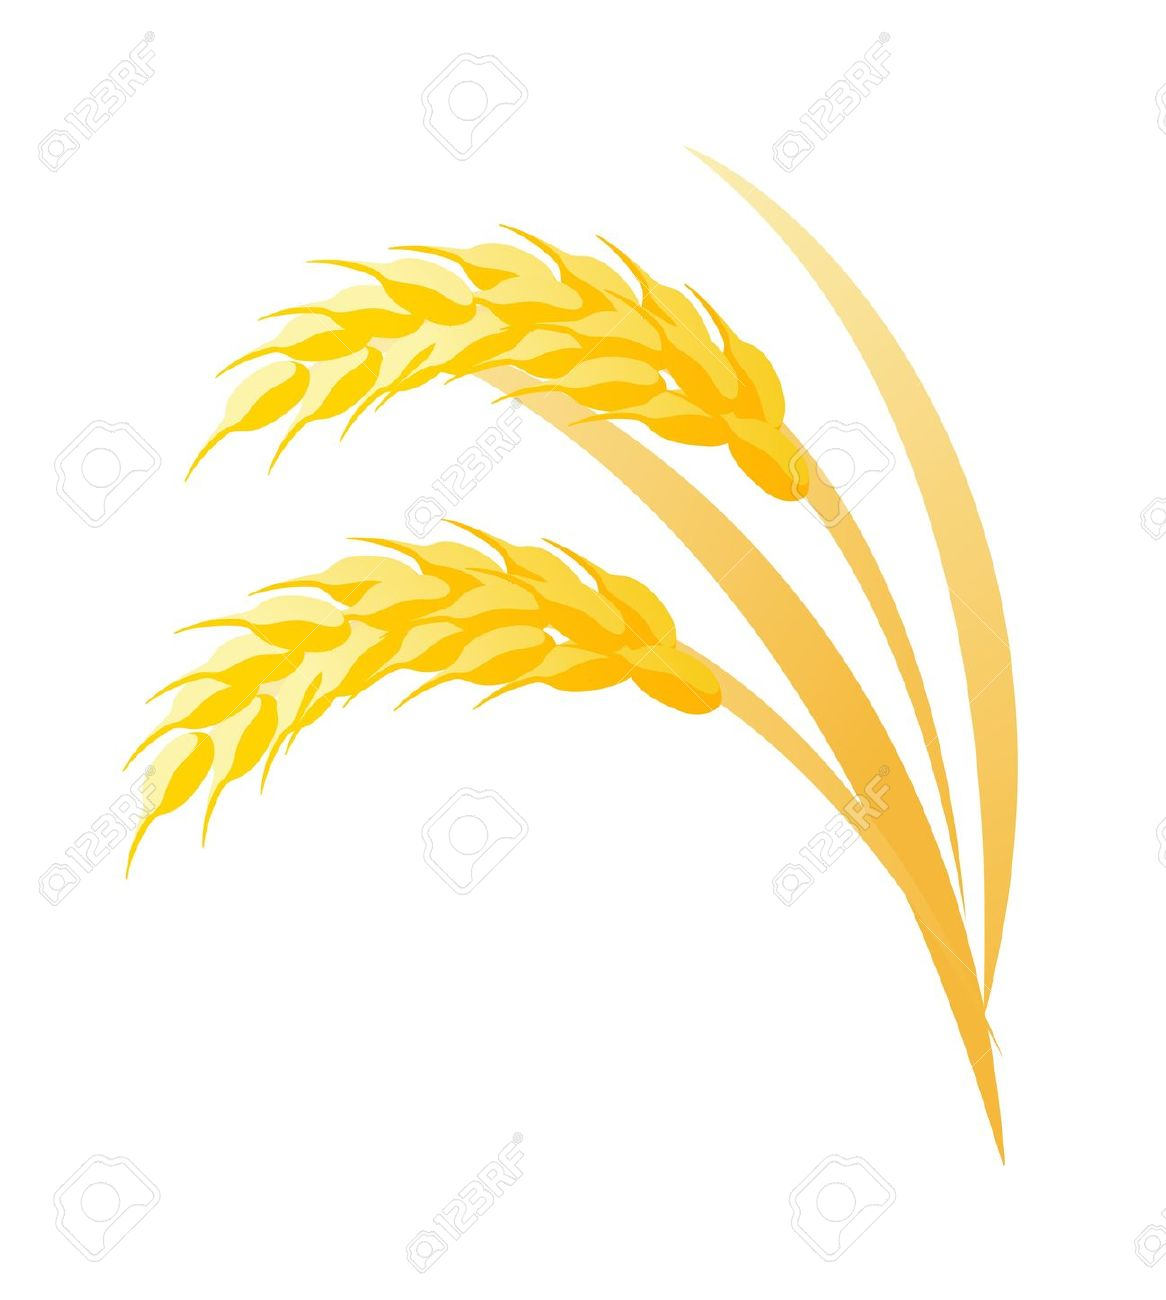 Rice harvest clipart - Clipground